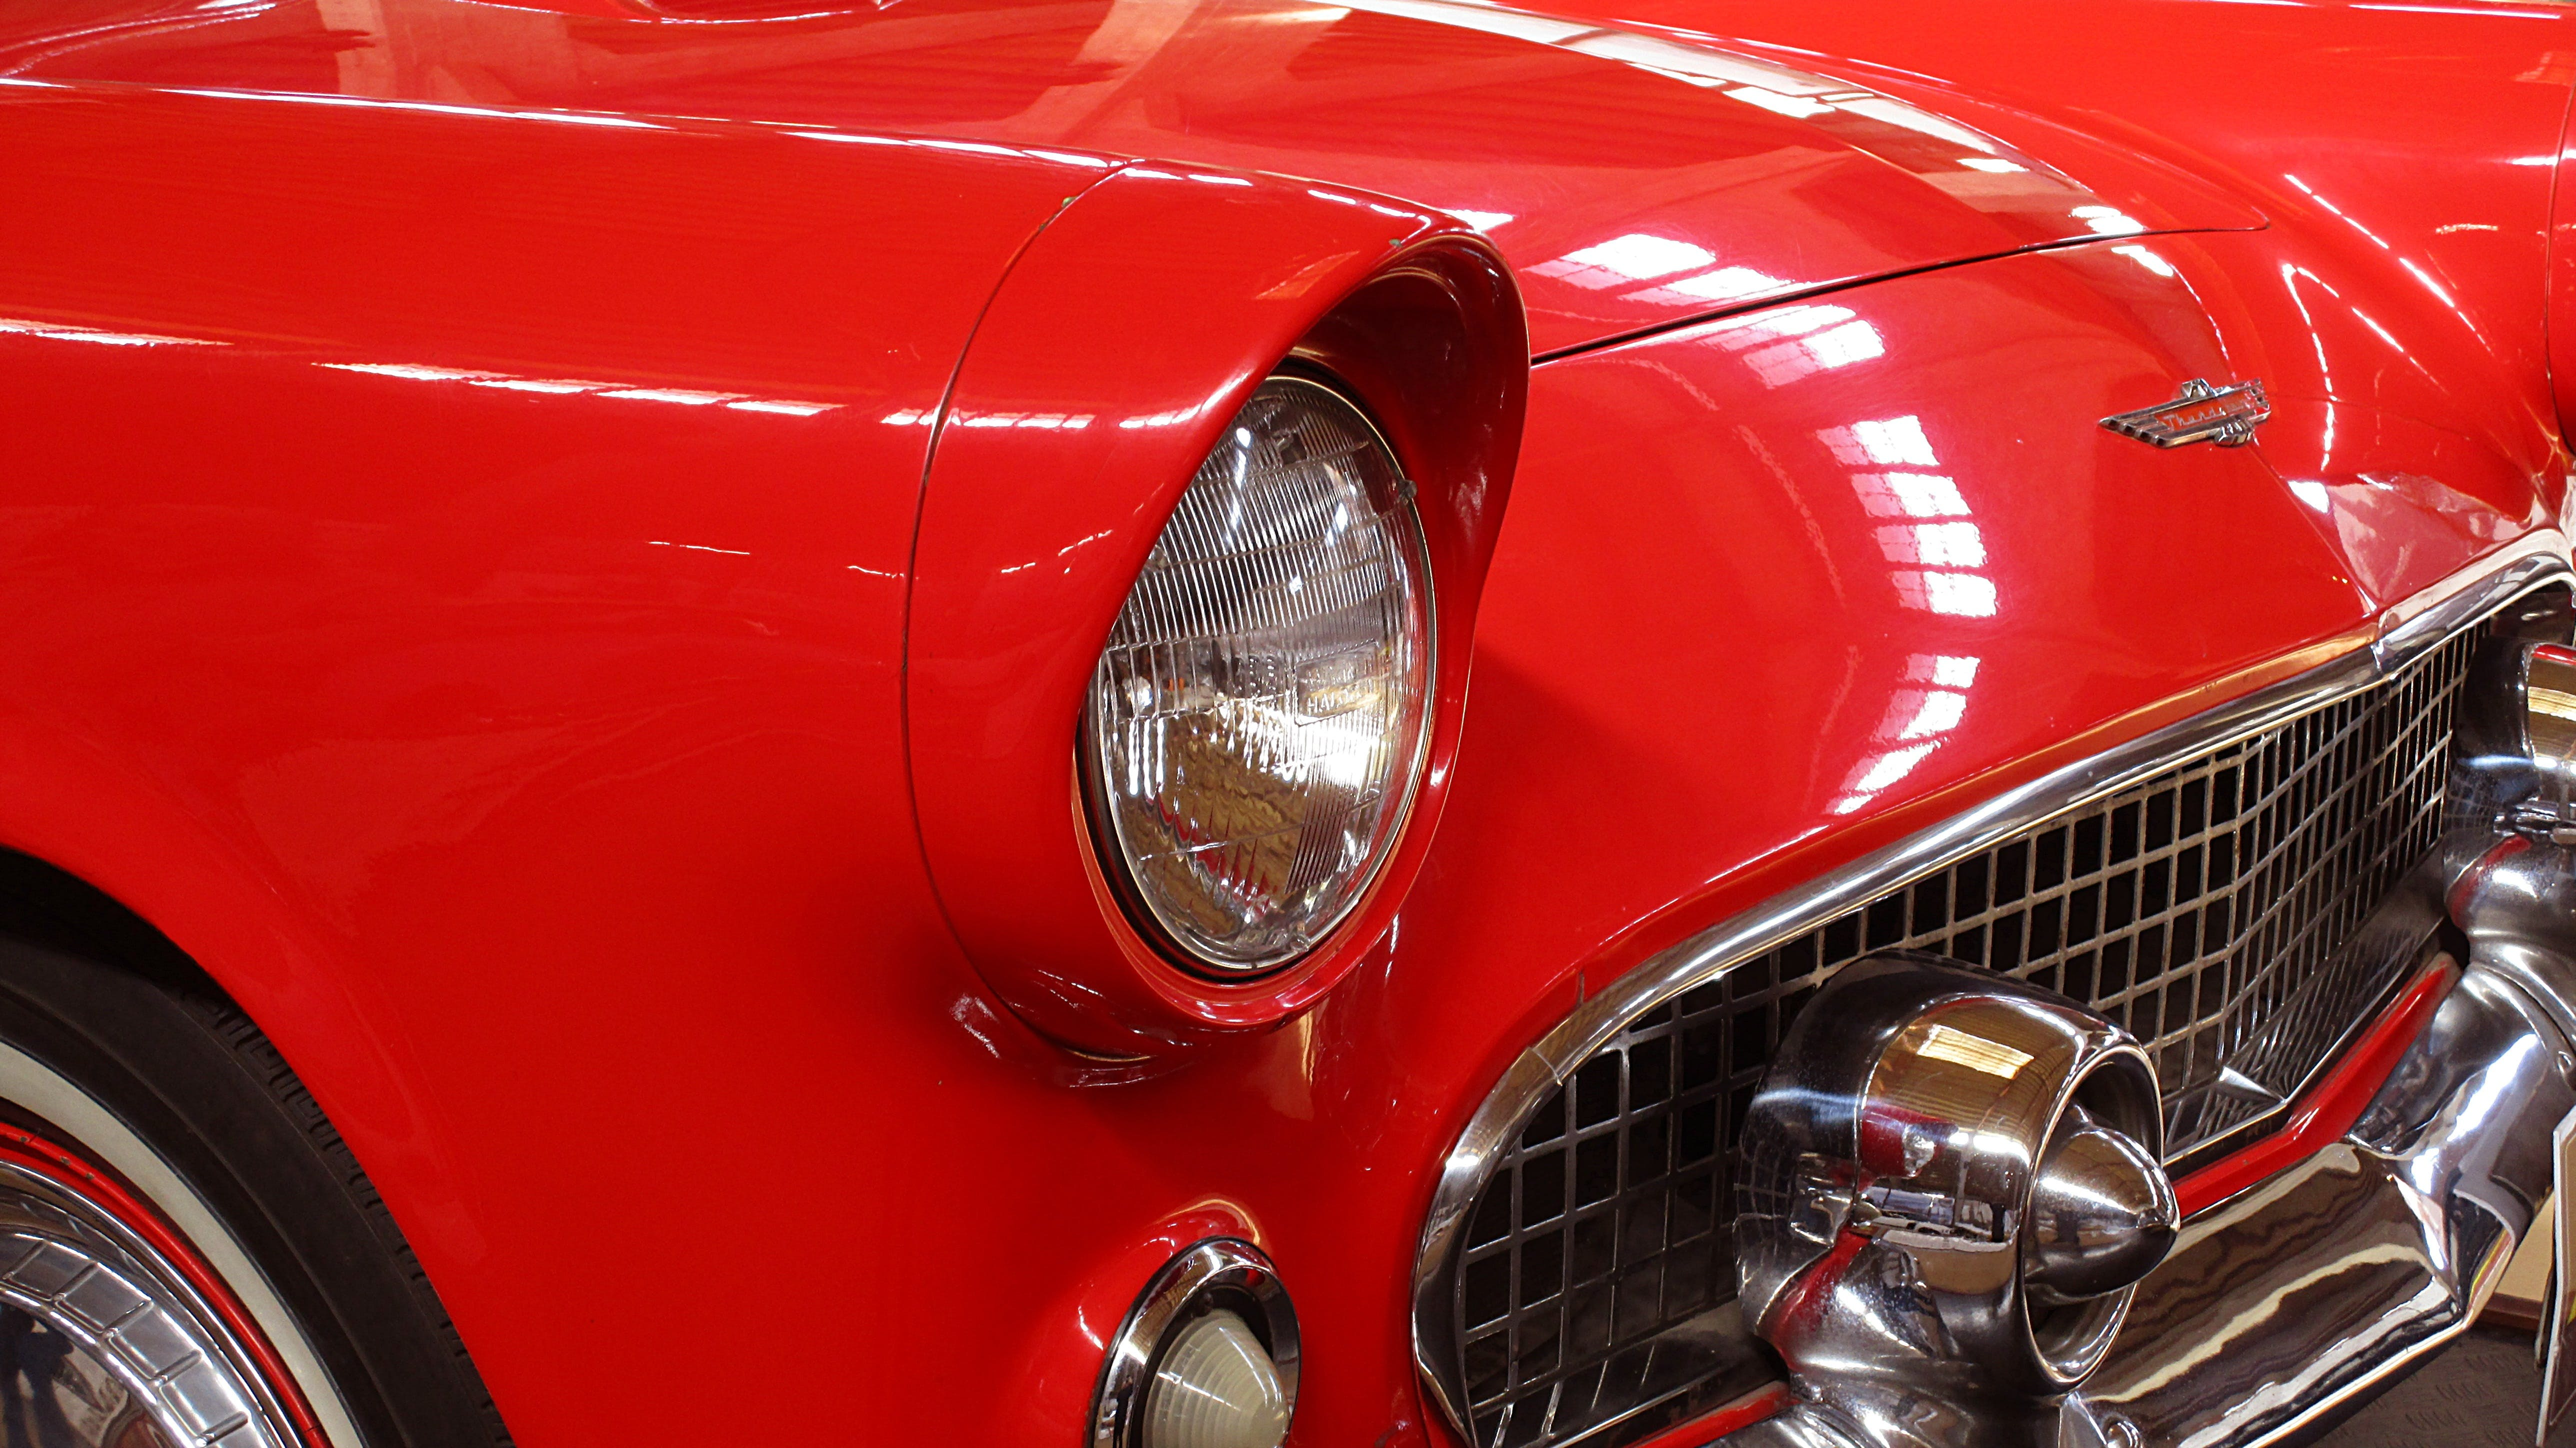 Classic Red Vehicle in Close-up Photography